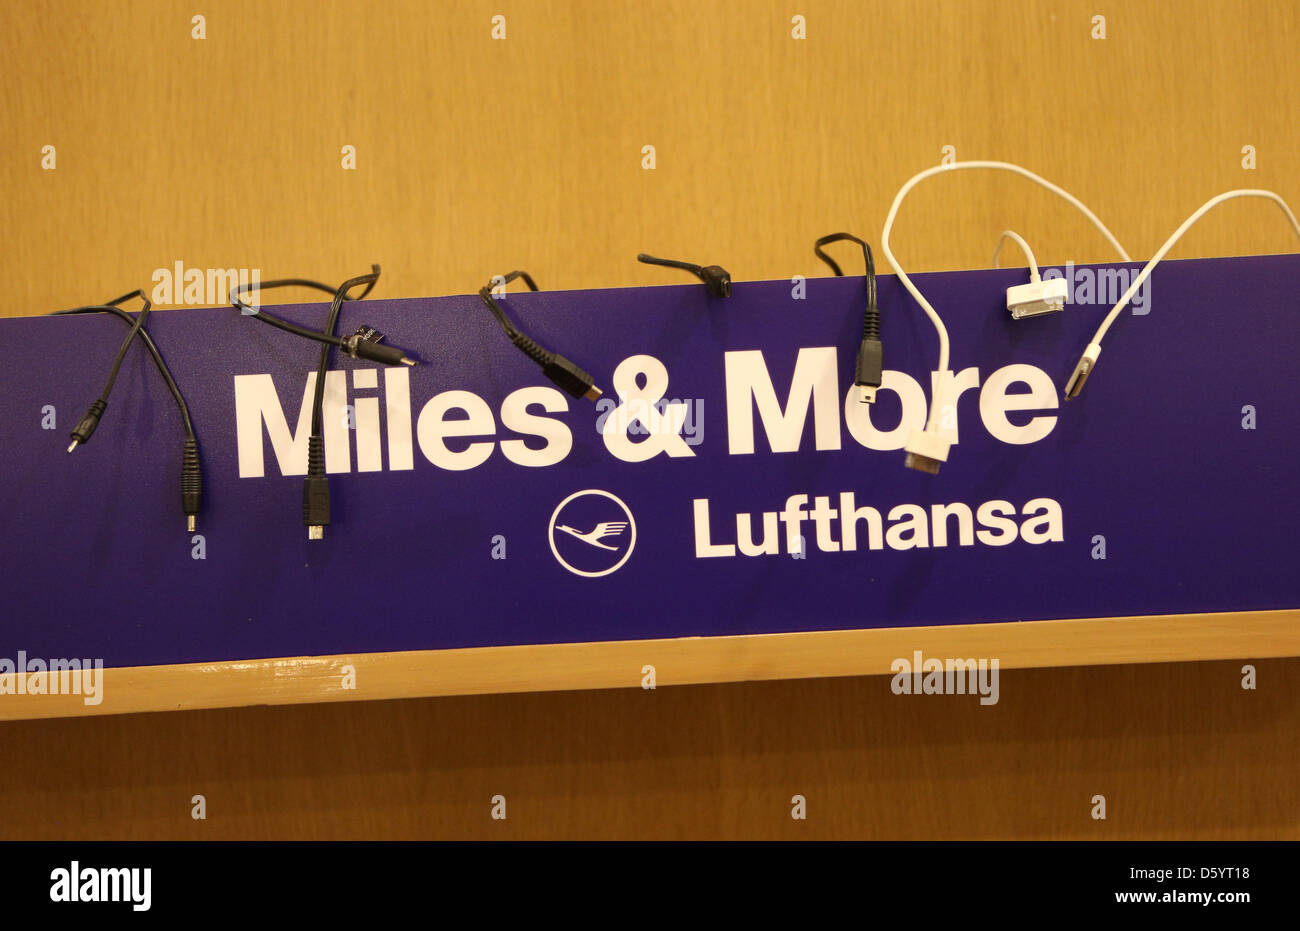 Miles And More India Phone Chargers Are Pictured At The Lufthansa Miles And More Booth